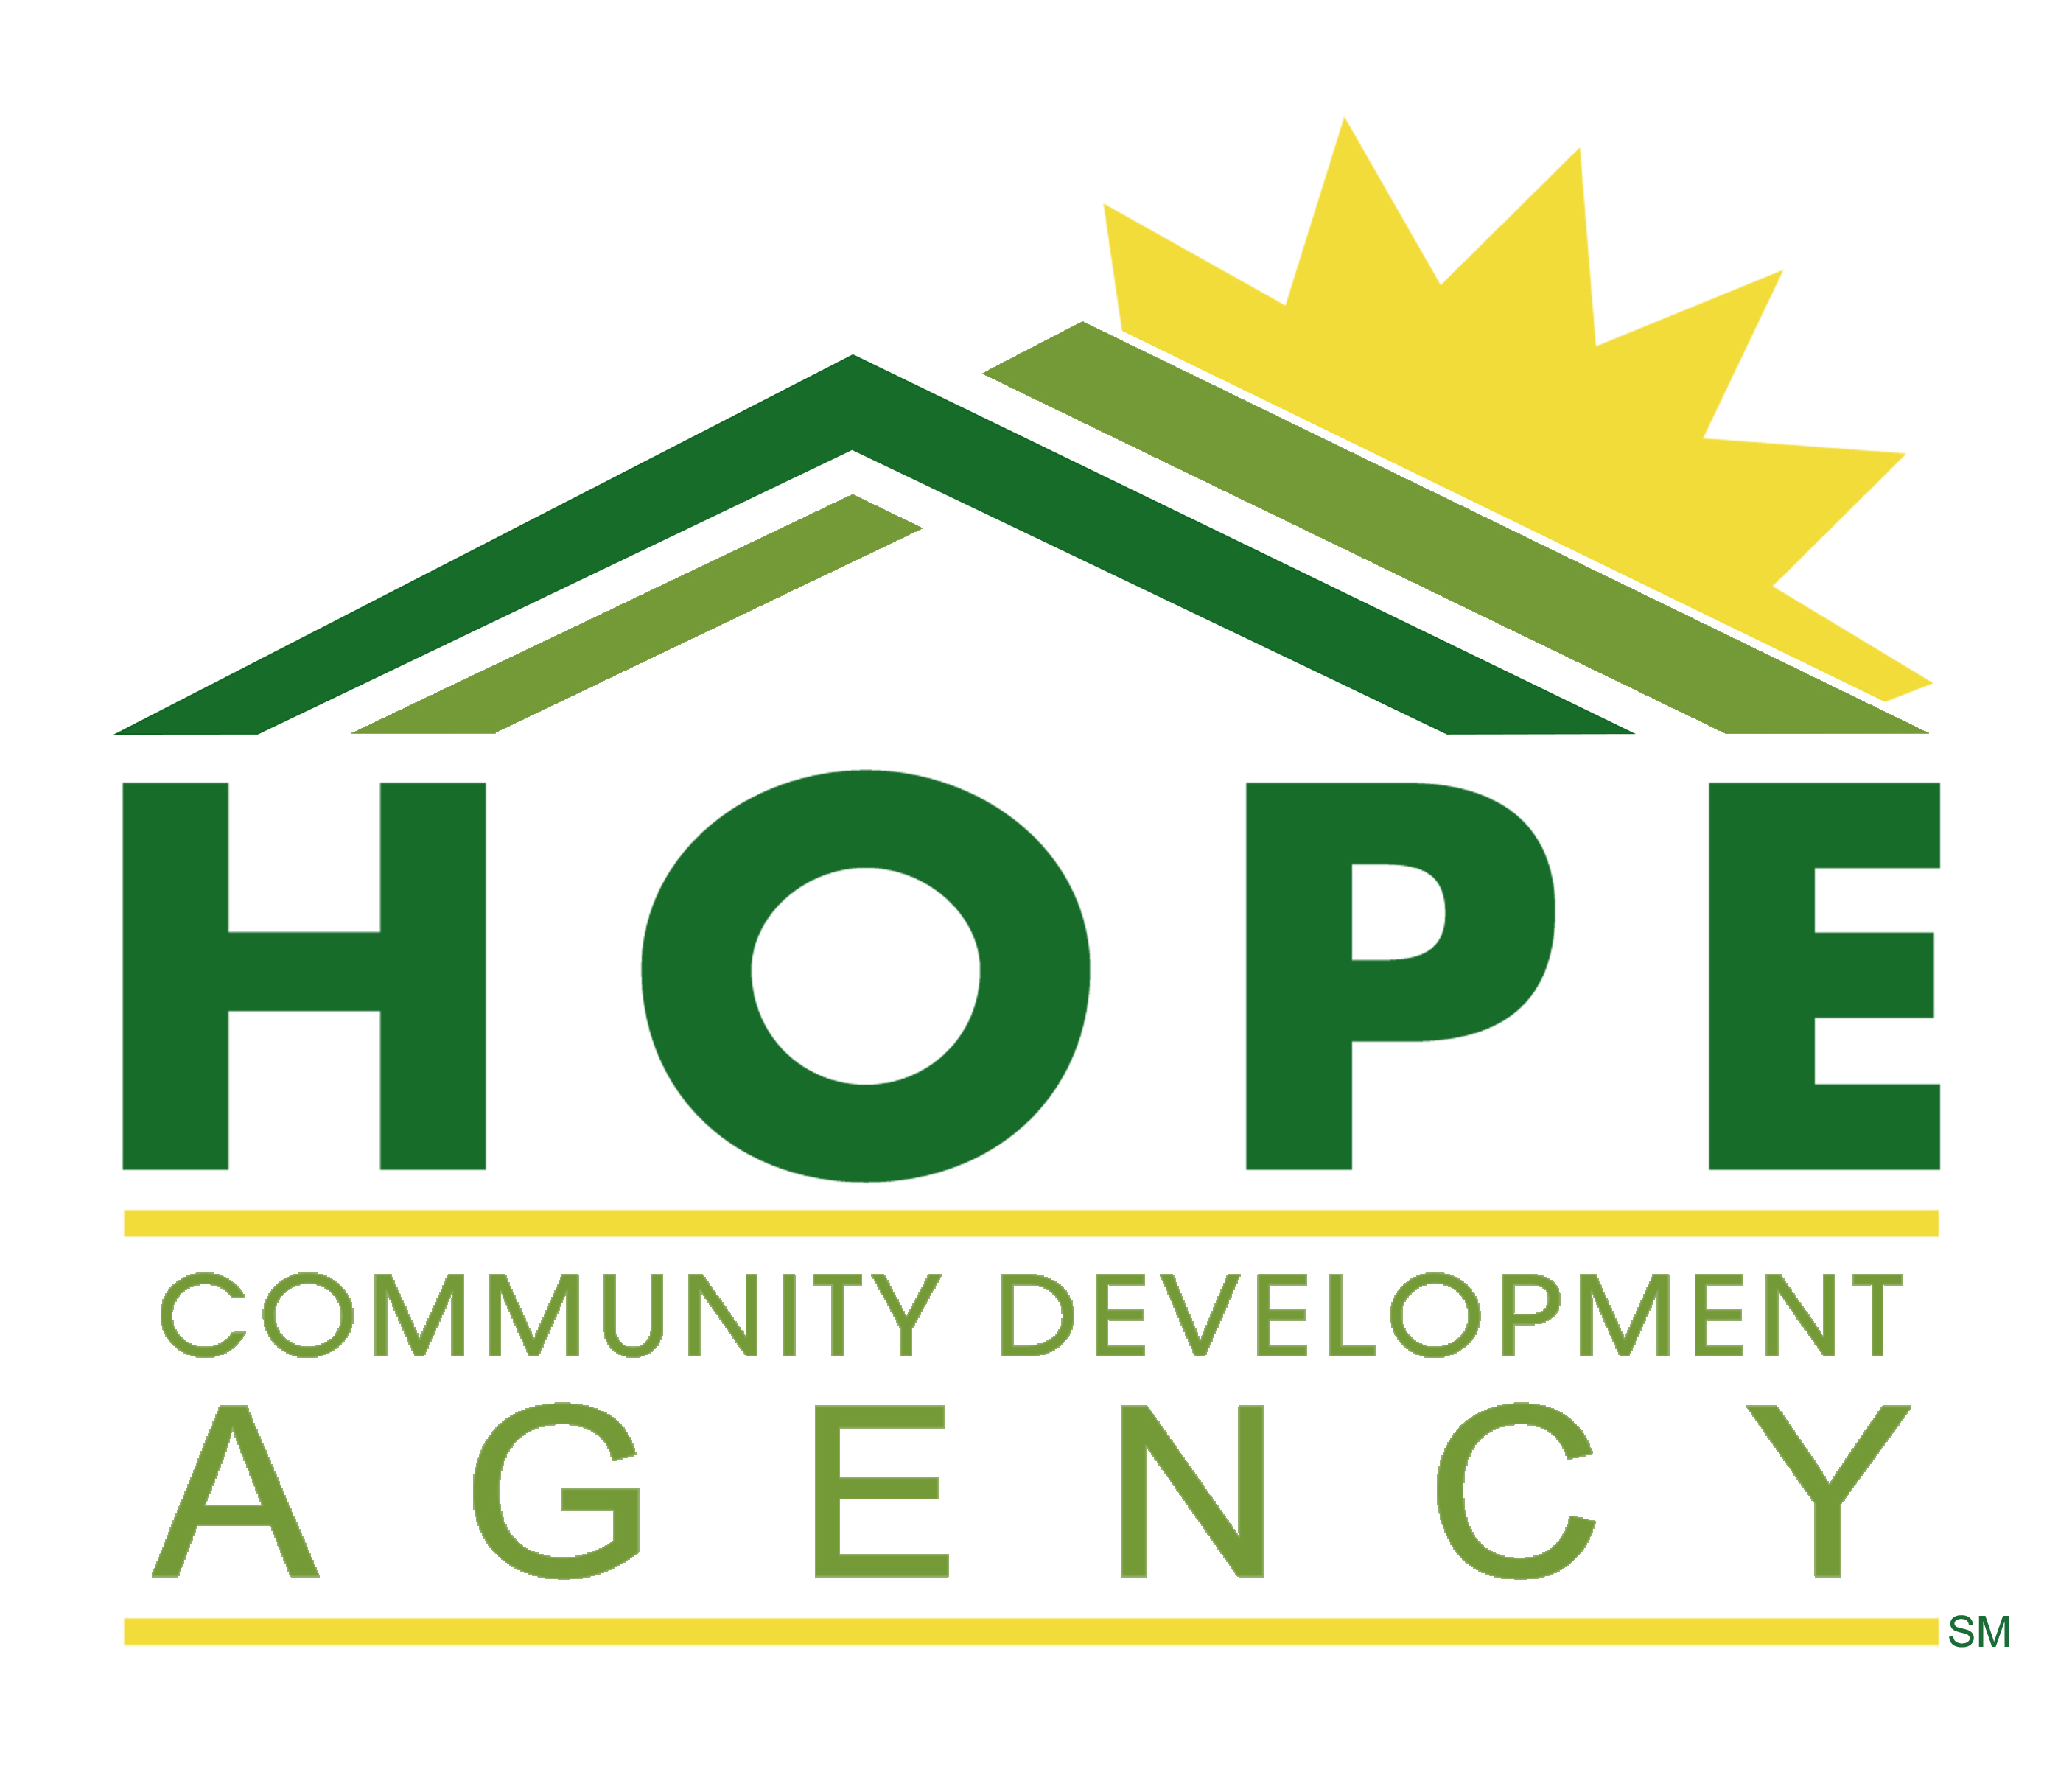 HOPE Community Development Agency logo